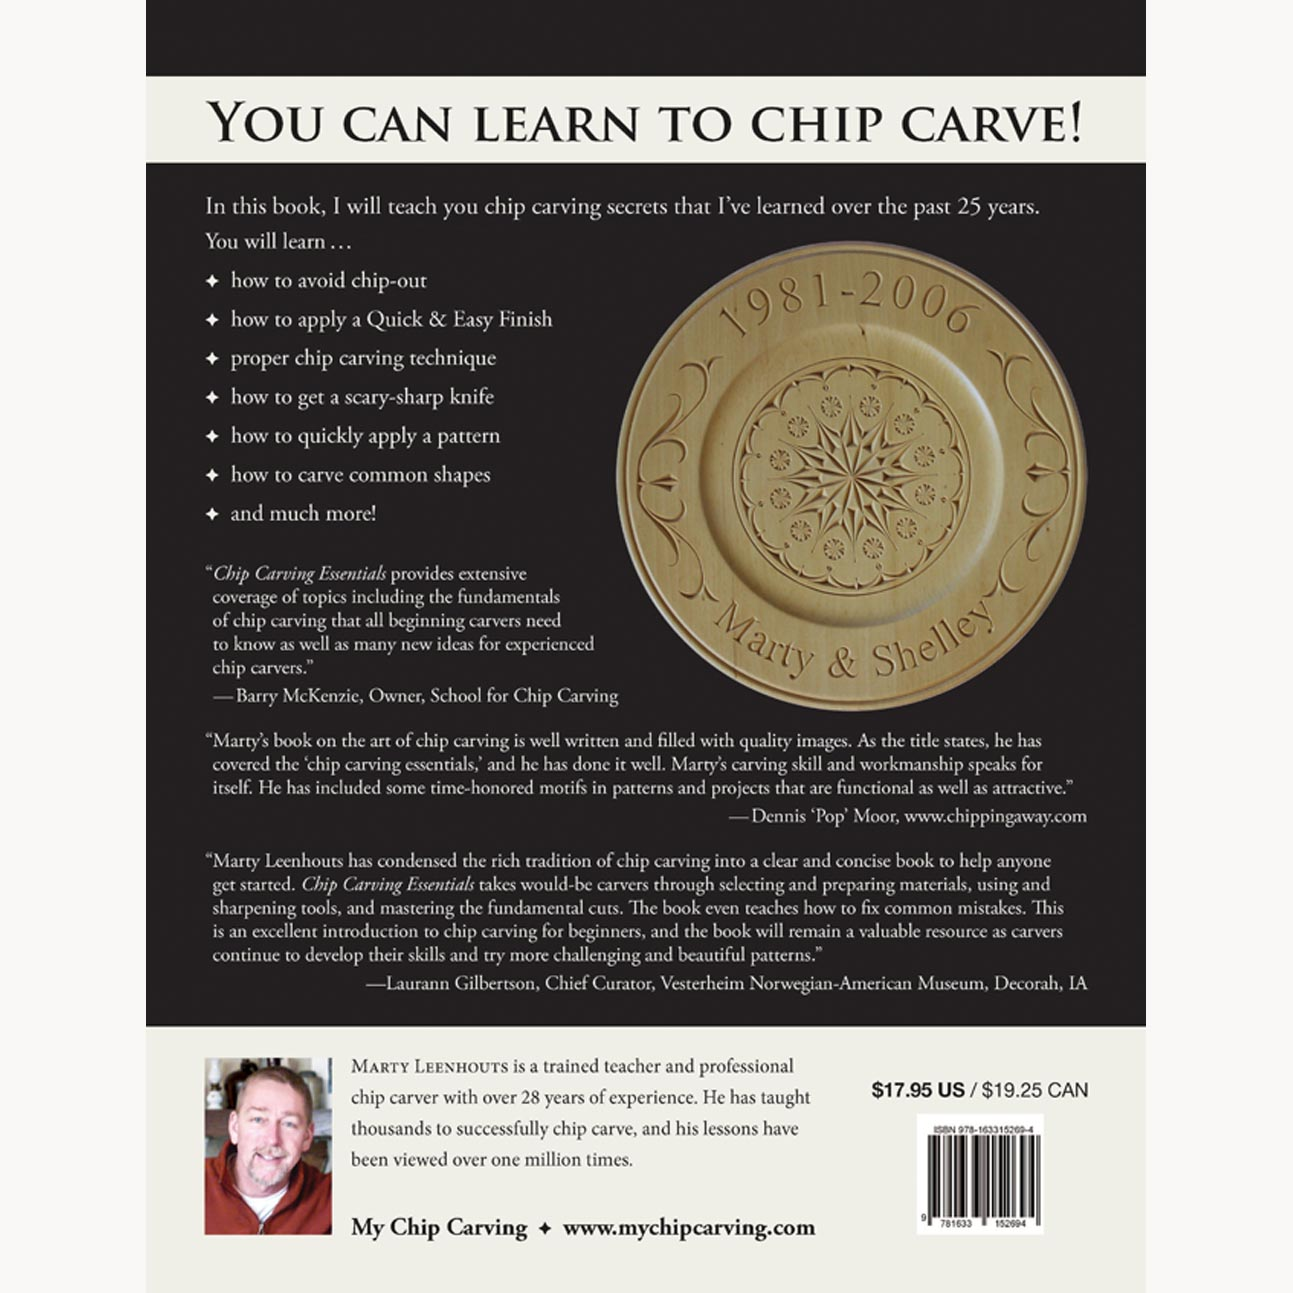 Chip carving essentials by marty leenhouts ezcarving